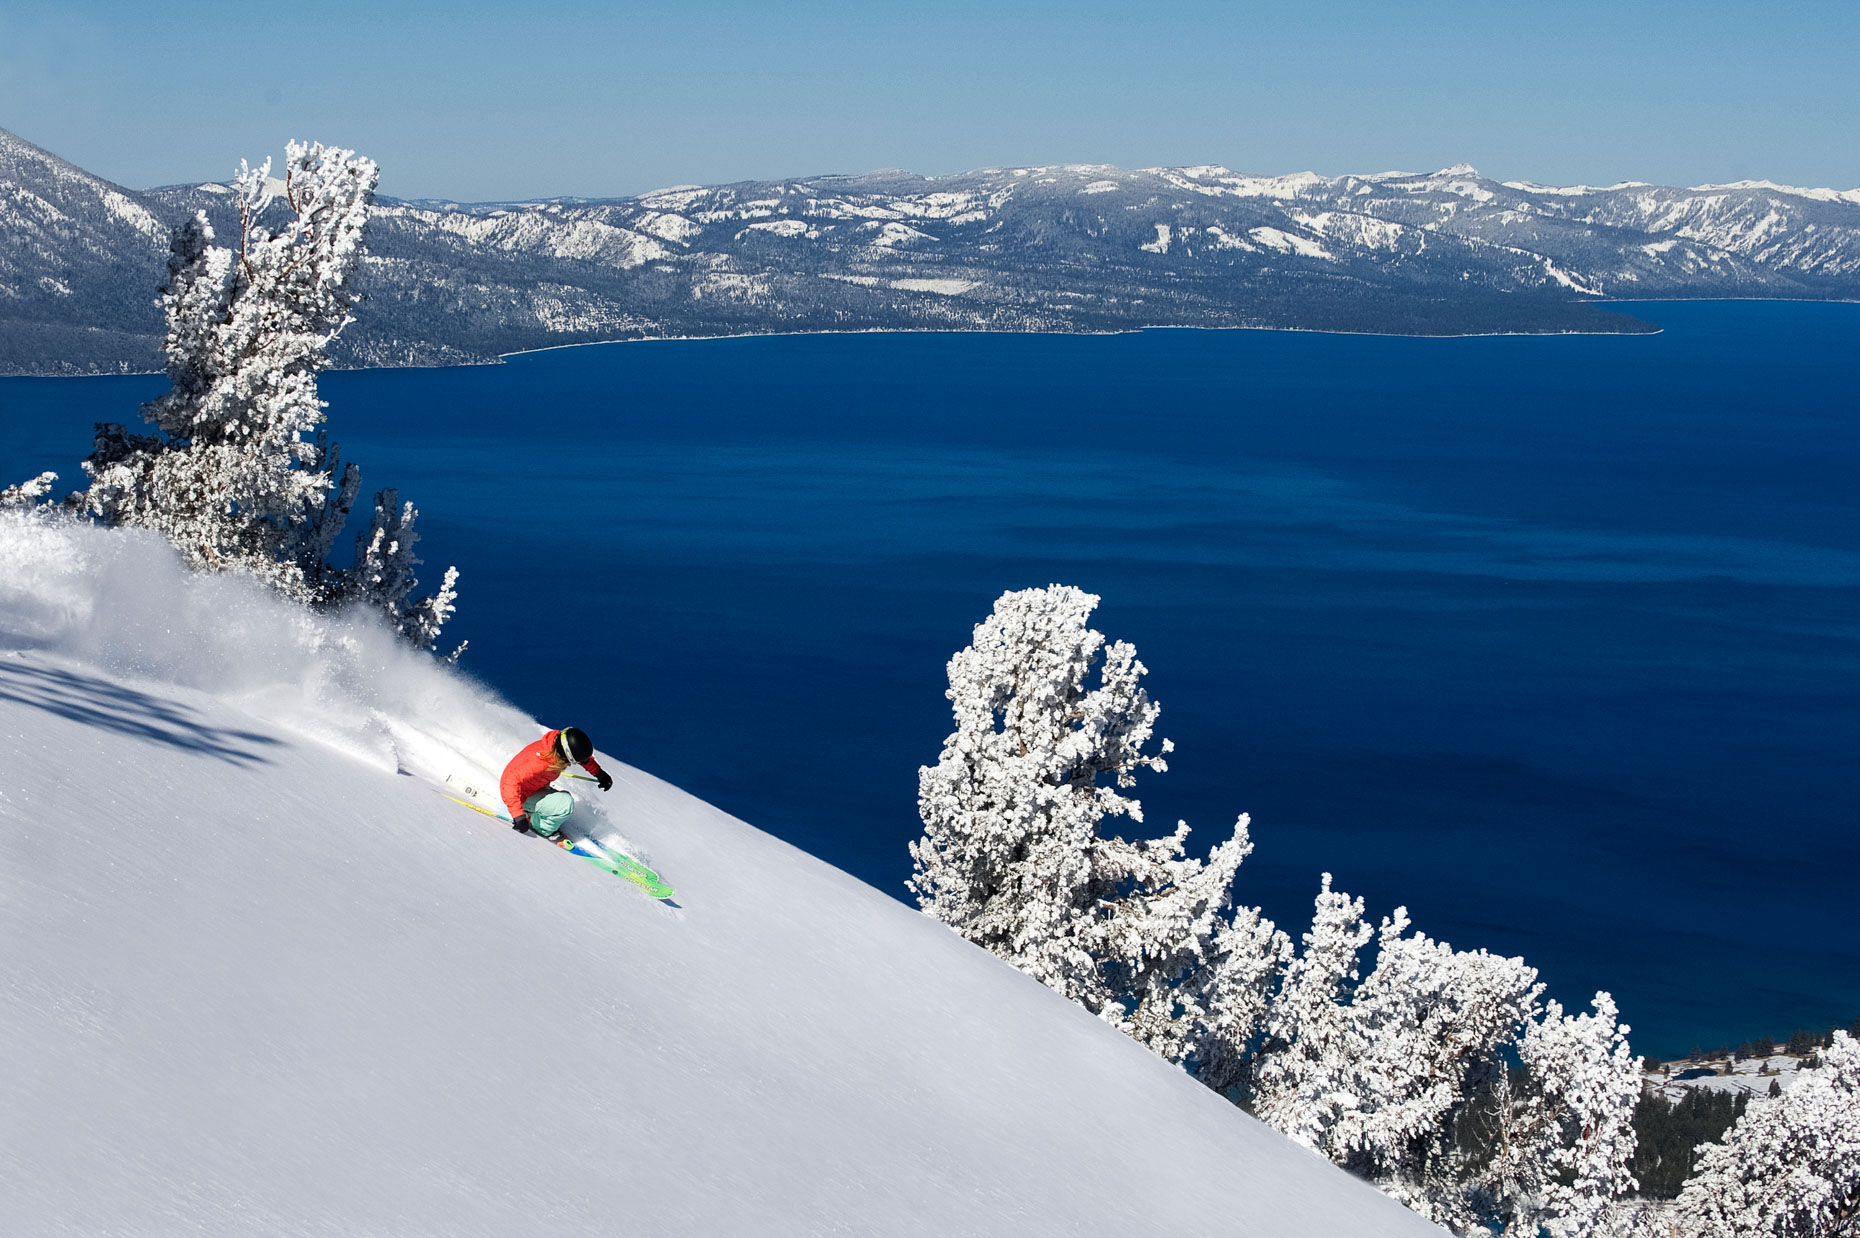 Skiing Powder At Heavenly Mountain Resort - South Lake Tahoe, California